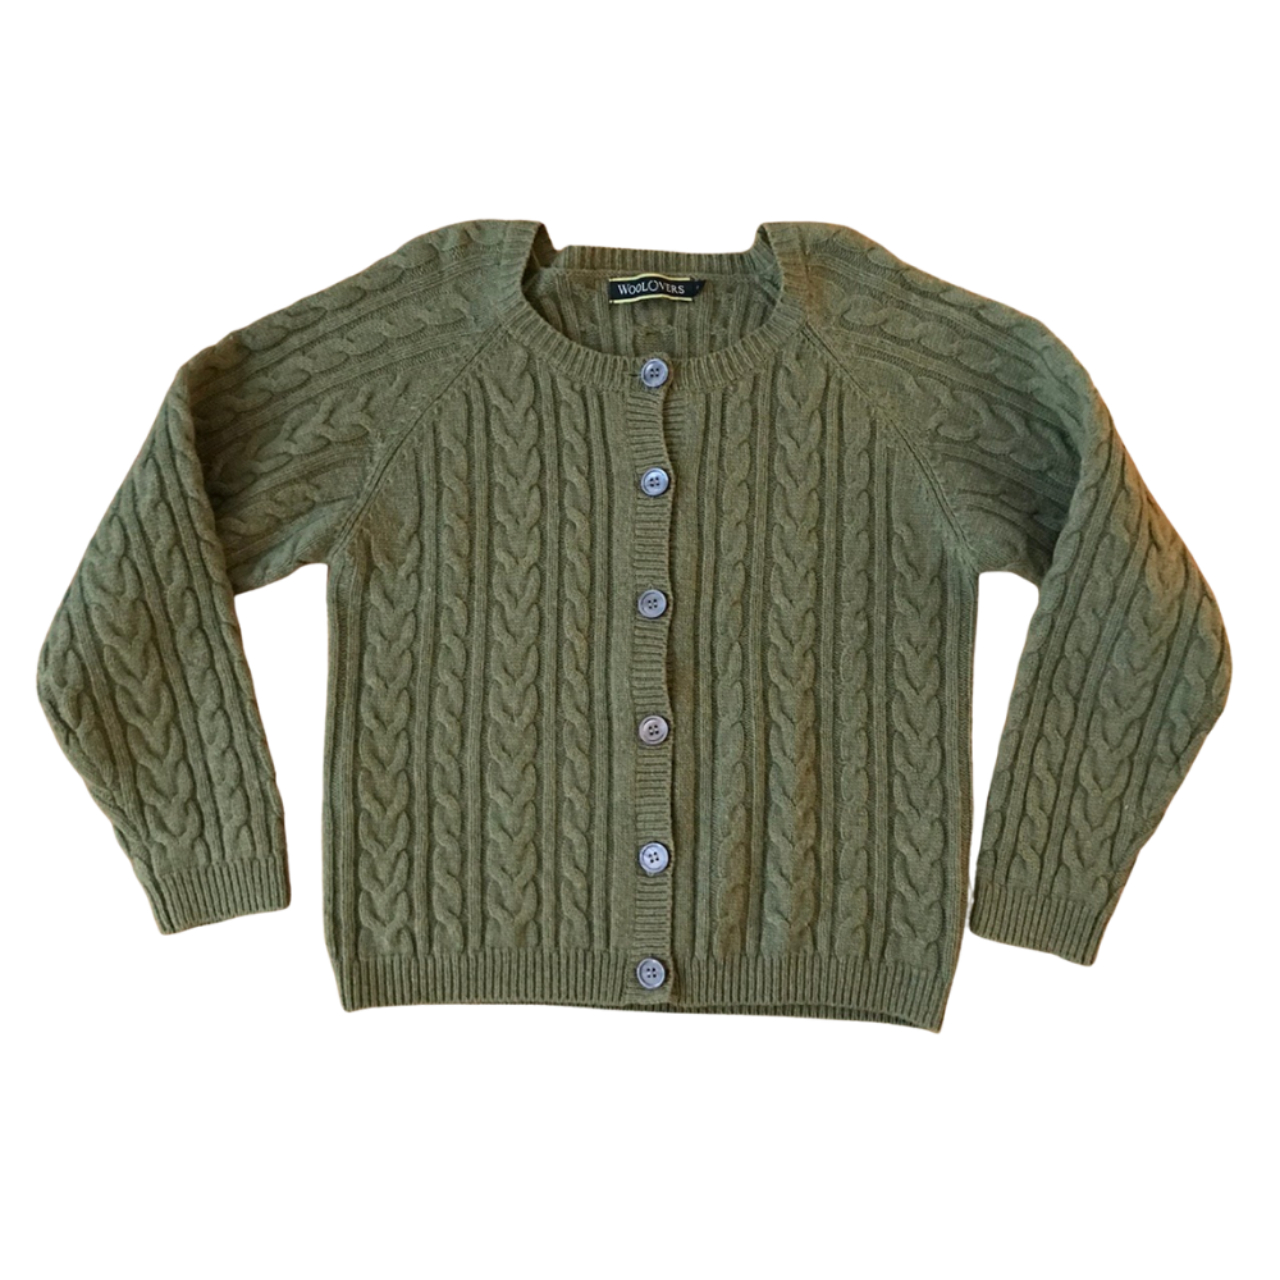 Product Image 1 - Woolovers Sage Green Cable Knit